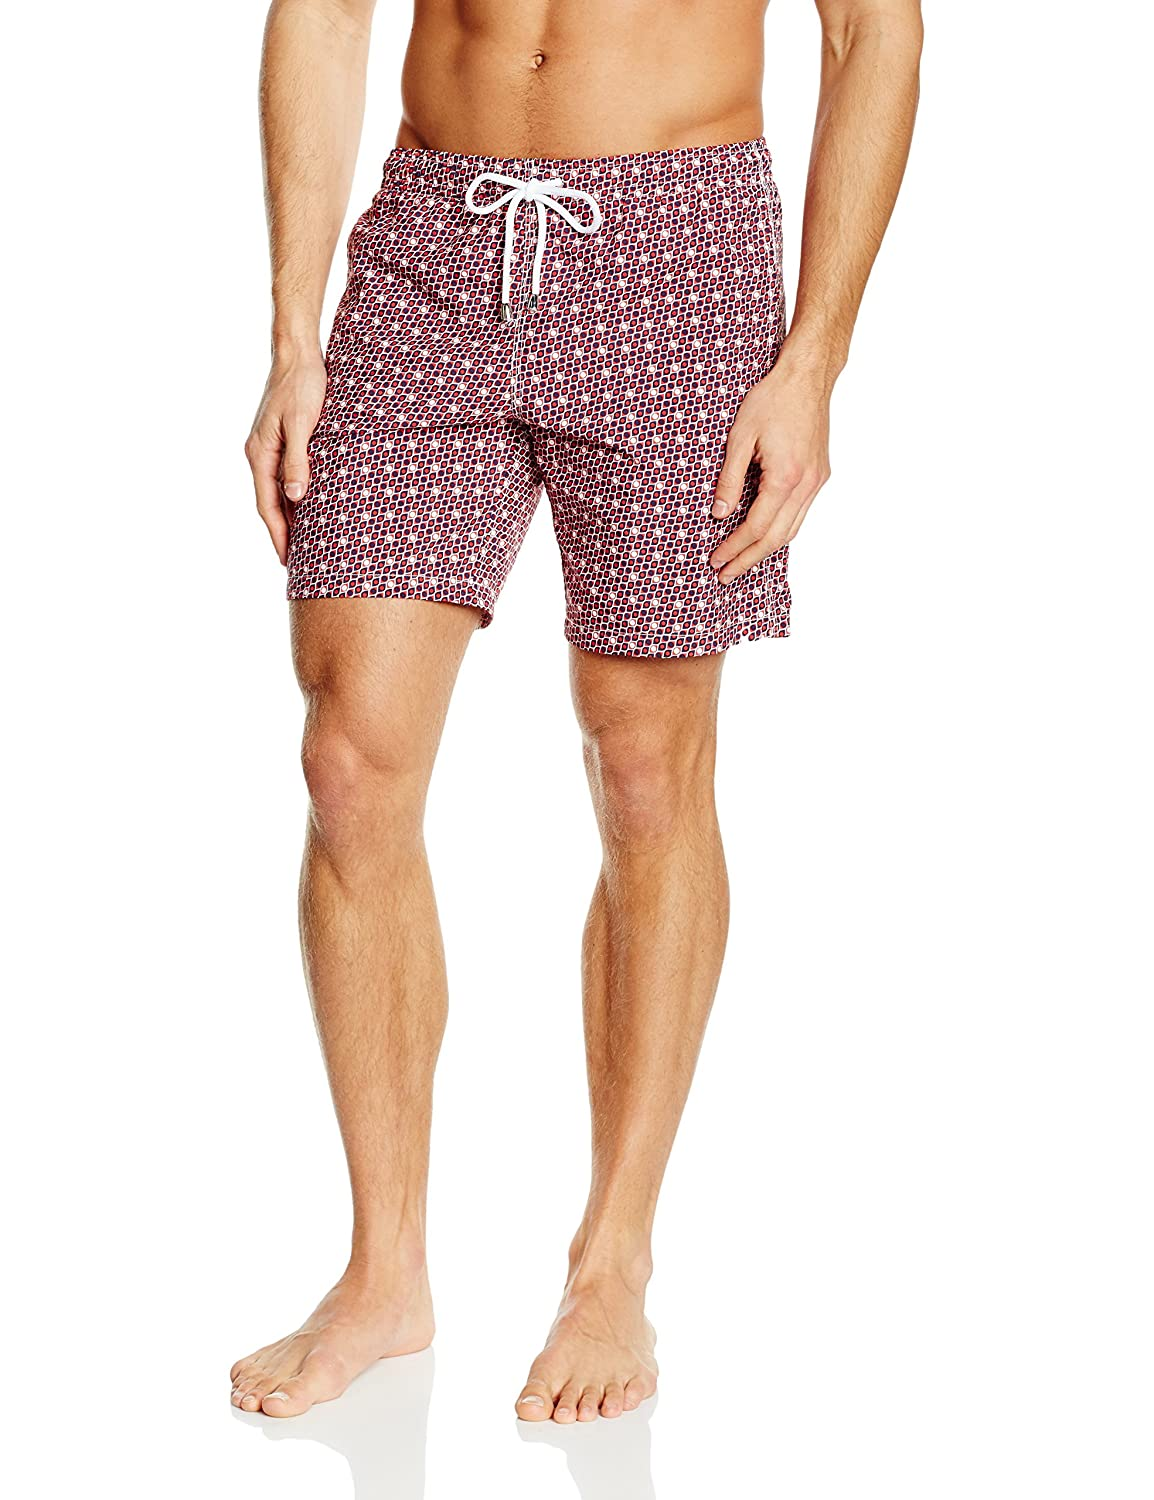 Roberto Verino Men's Geometrico Swimsuit